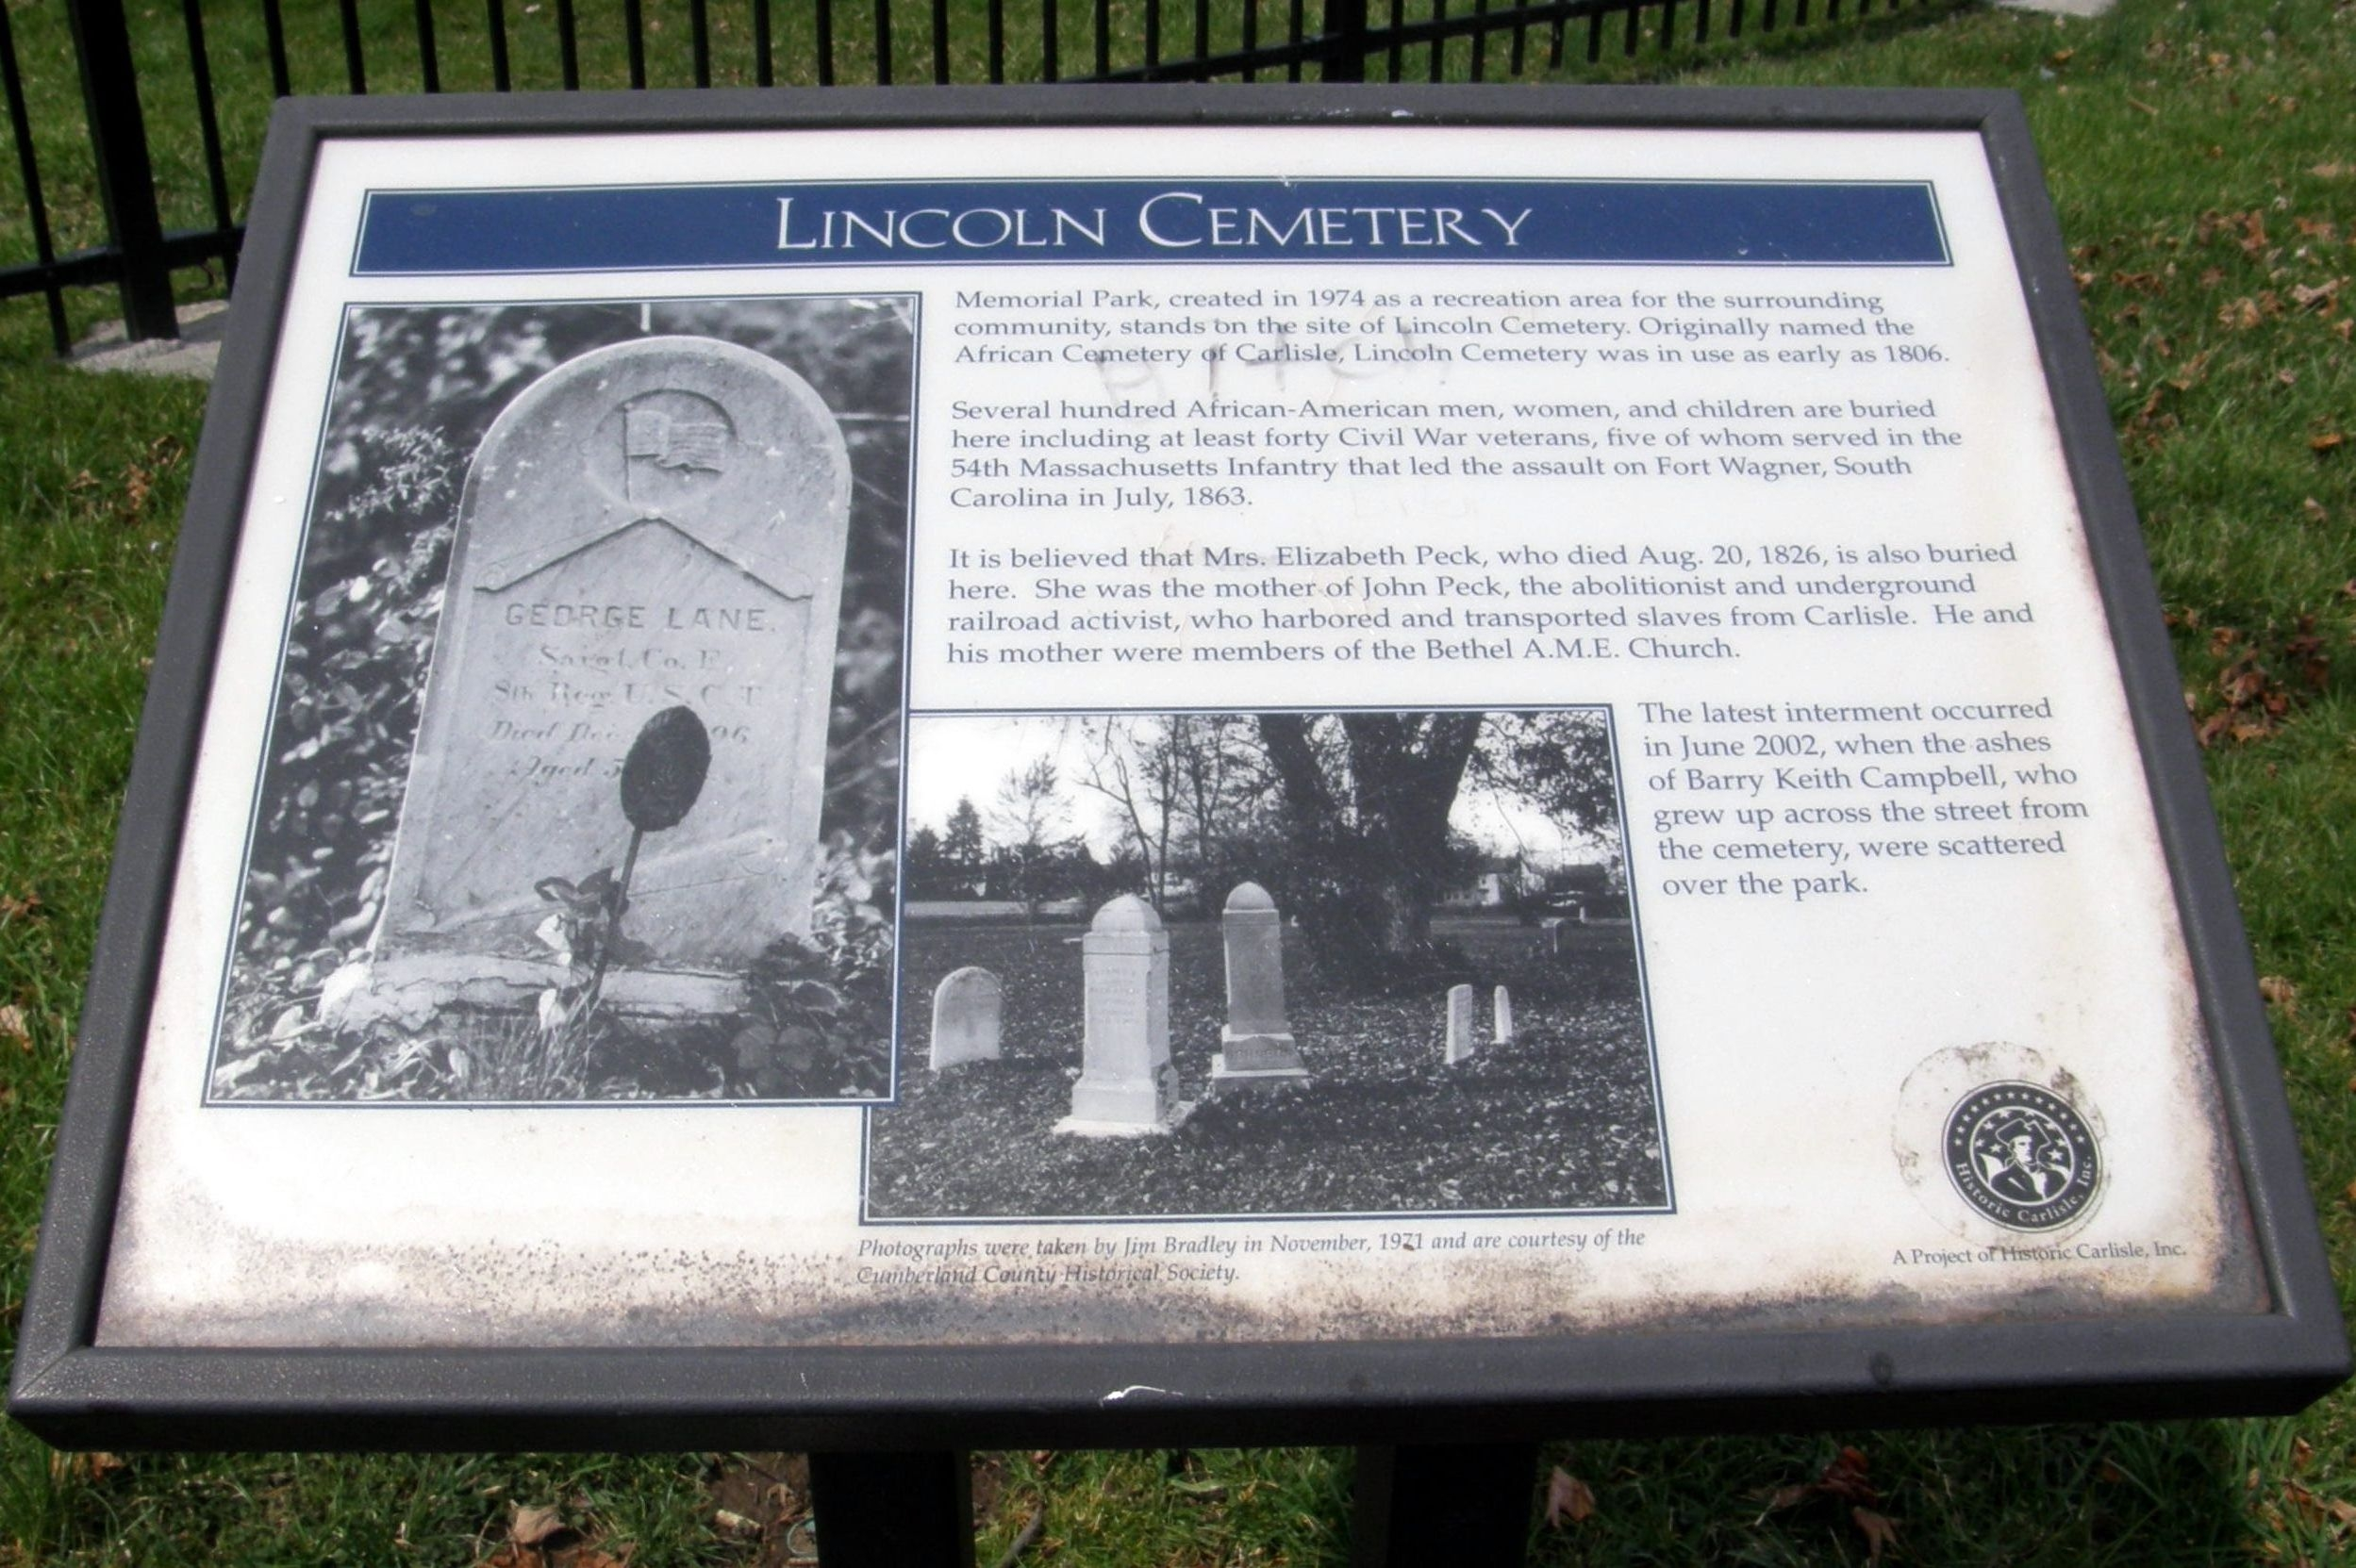 Lincoln Cemetery Marker